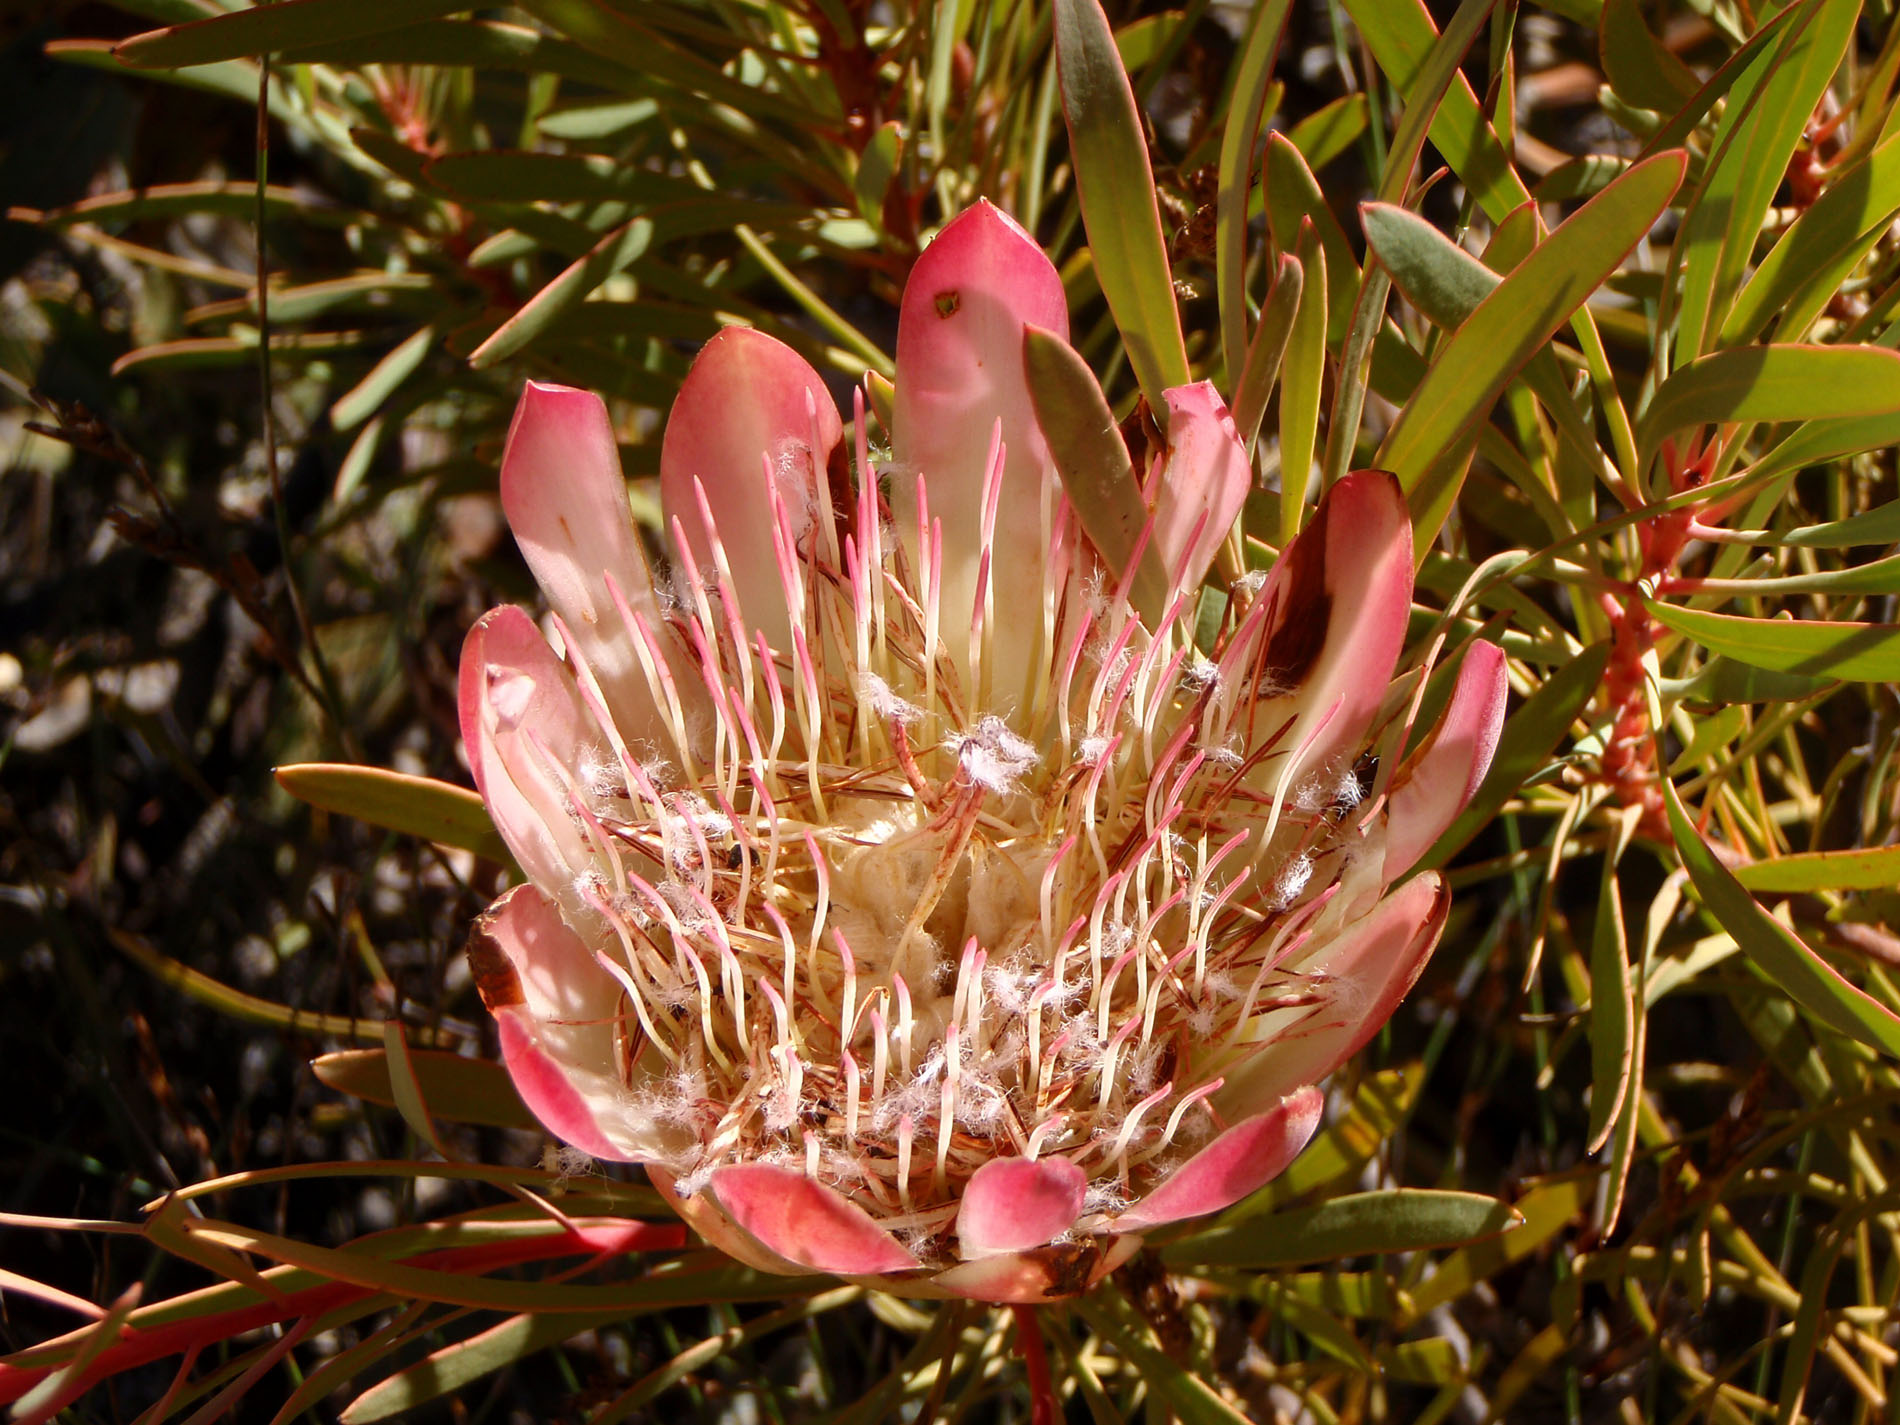 Protea, die Nationalblume